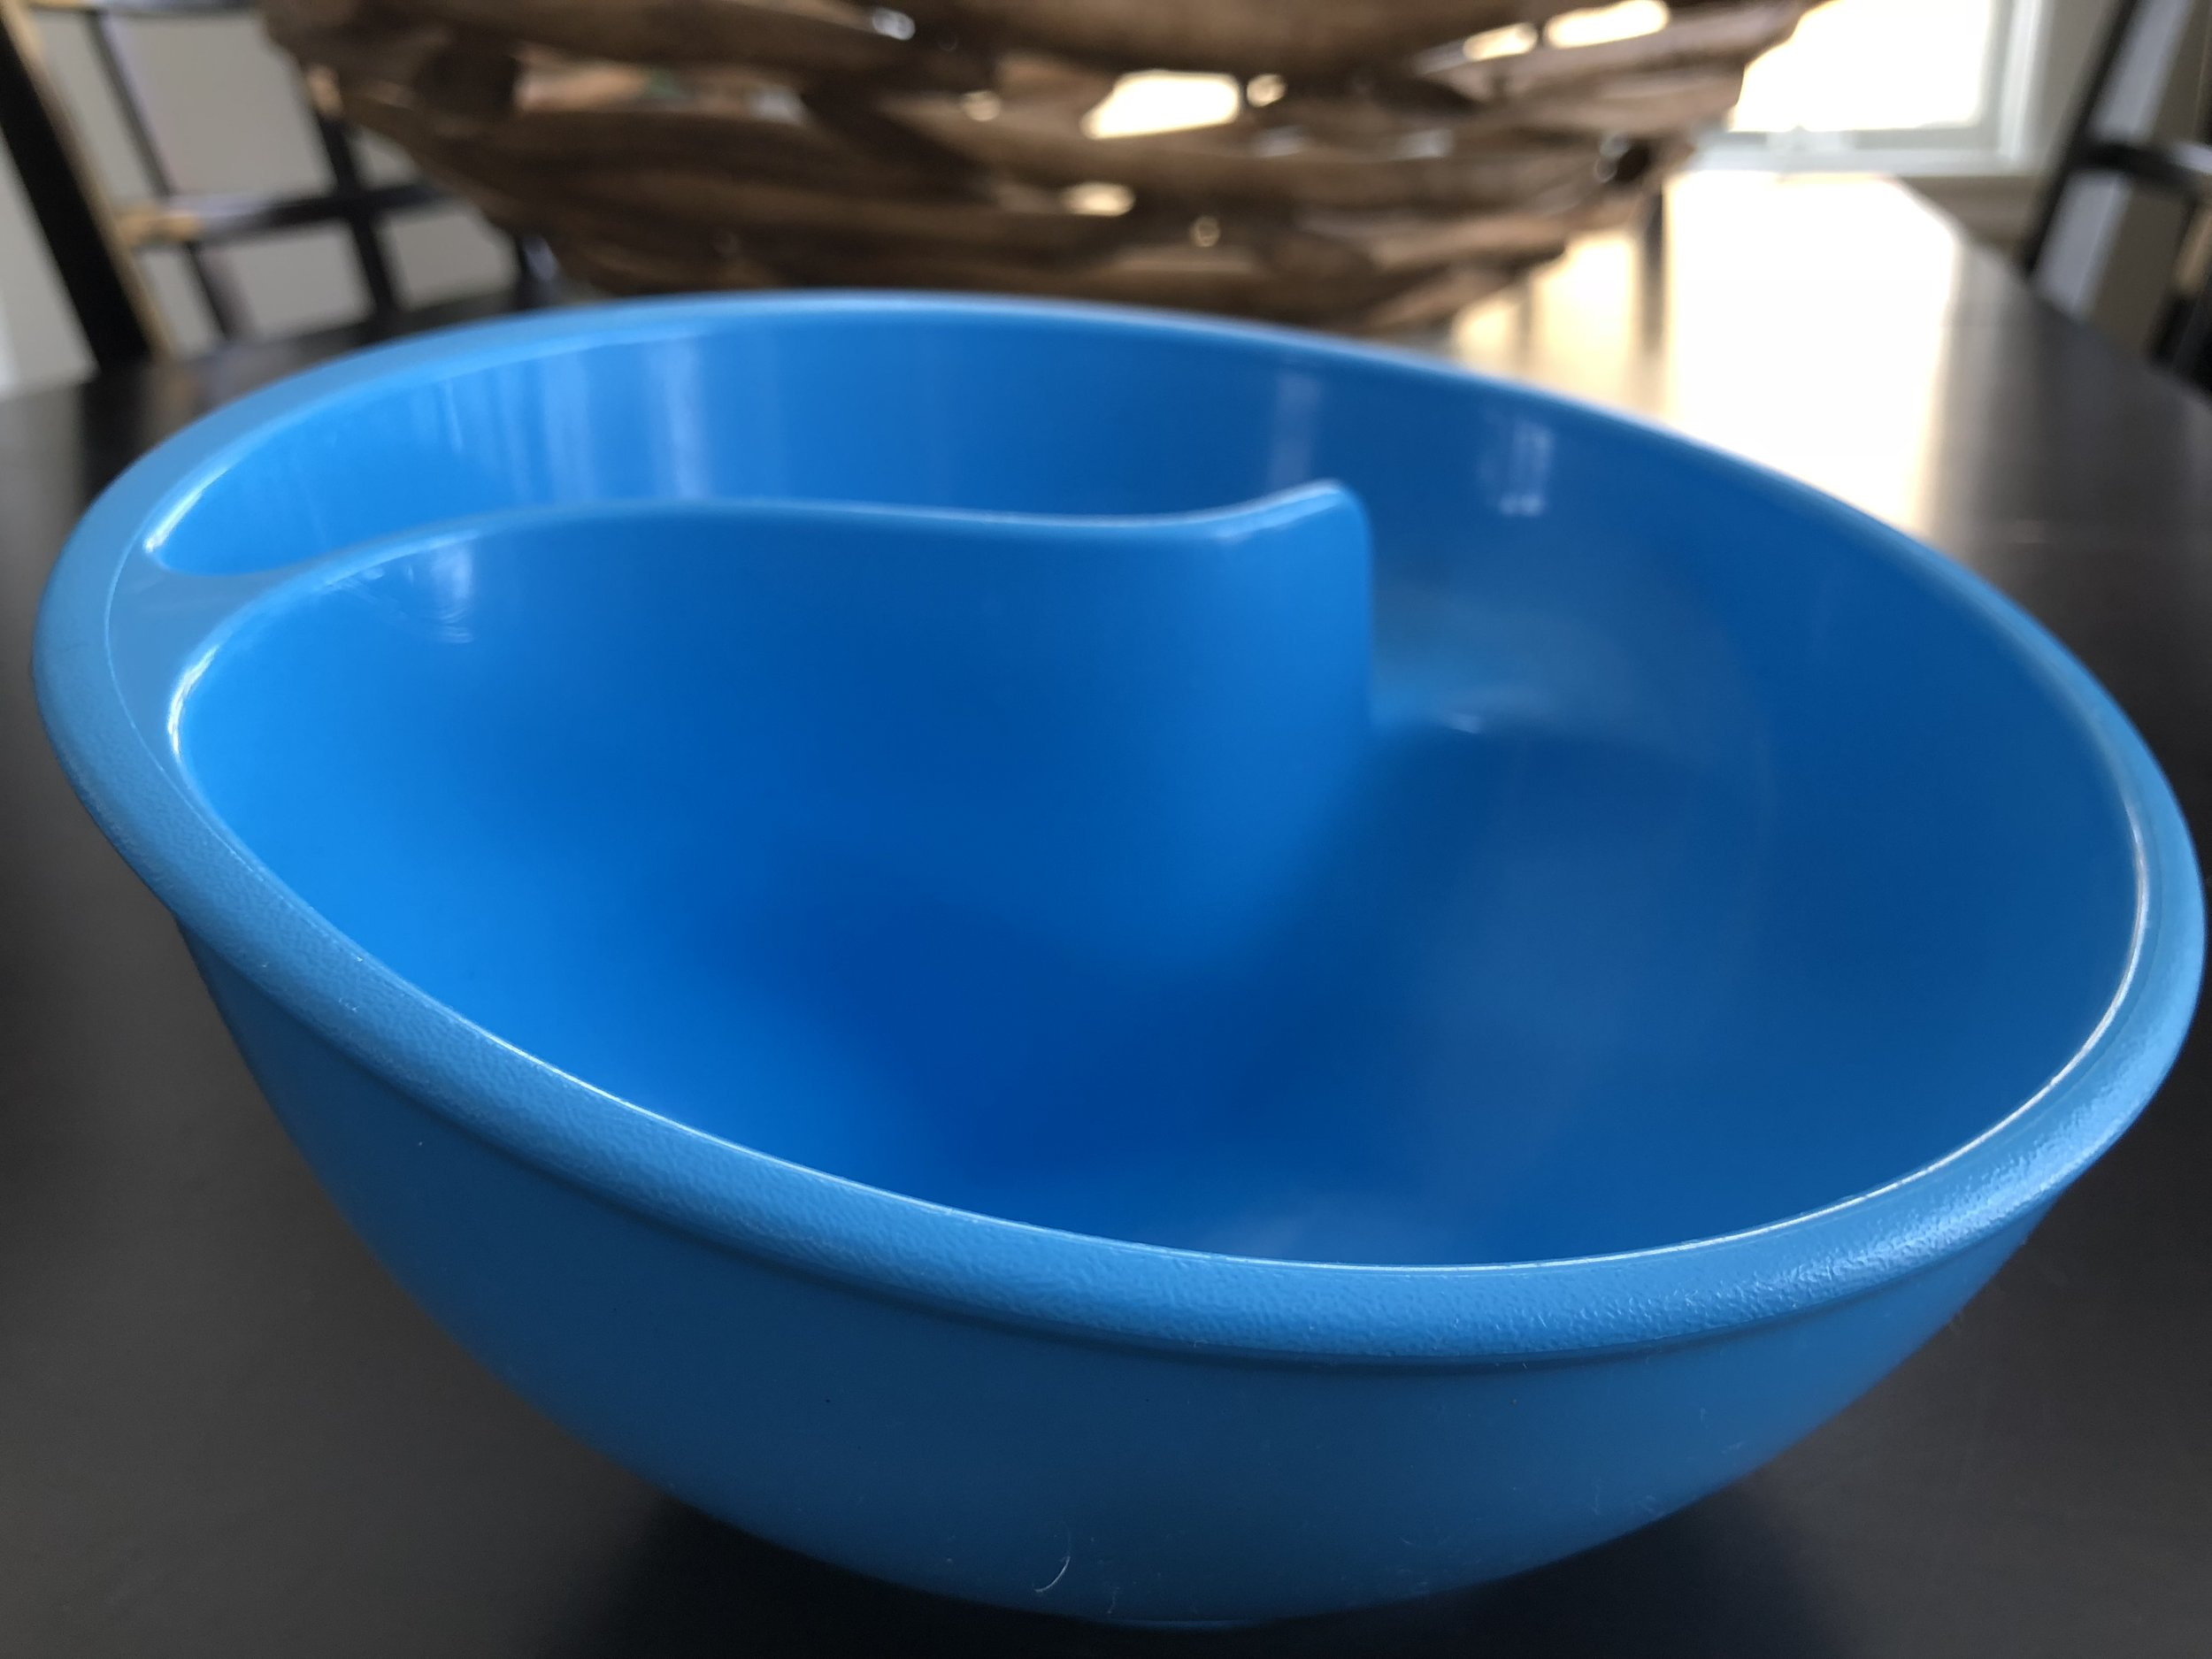 Here's a glimpse of my son's food pickiness or control issues. My son's cereal bowl keeps the cereal dry and not mushy because he controls when the cereal goes into the milk. I bought it years ago at Brookstone's - I think.